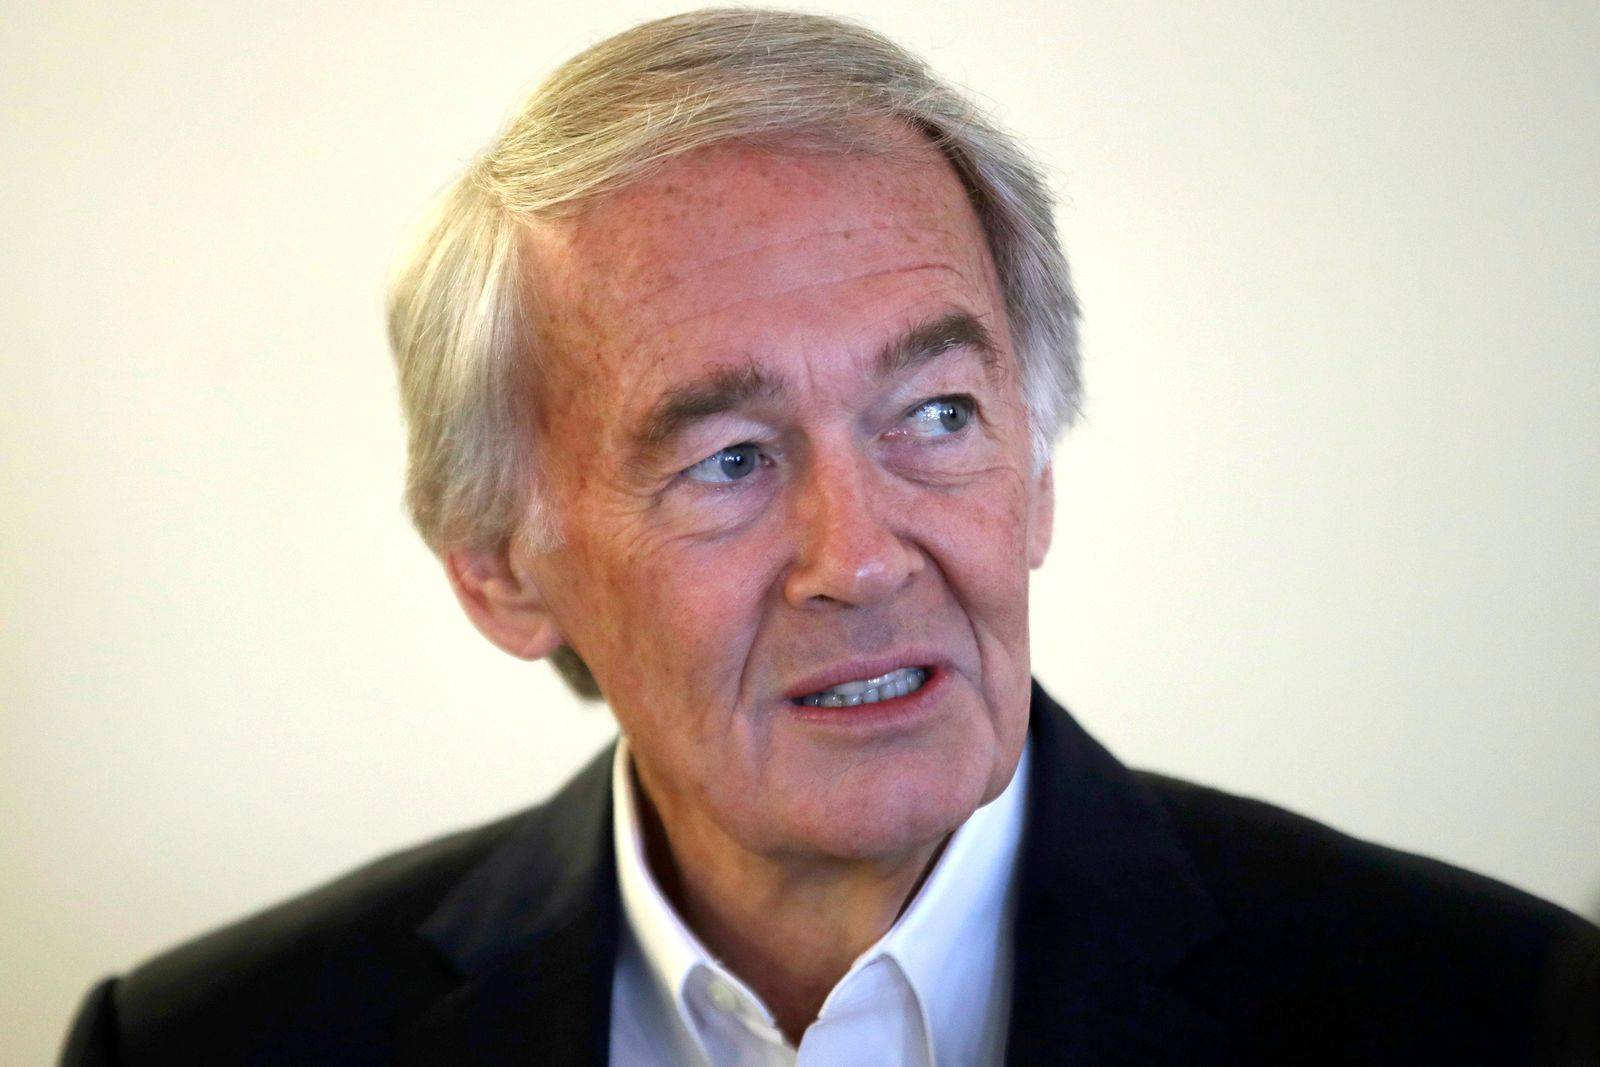 FILE - In this Aug. 26, 2019 file photo, U.S. Sen. Edward Markey, D-Mass., speaks during a news conference in Boston. U.S. Rep. Joseph Kennedy III plans to announce on Saturday, Sept. 21, that he will challenge Markey in the 2020 Democratic primary. (AP Photo/Elise Amendola, File)